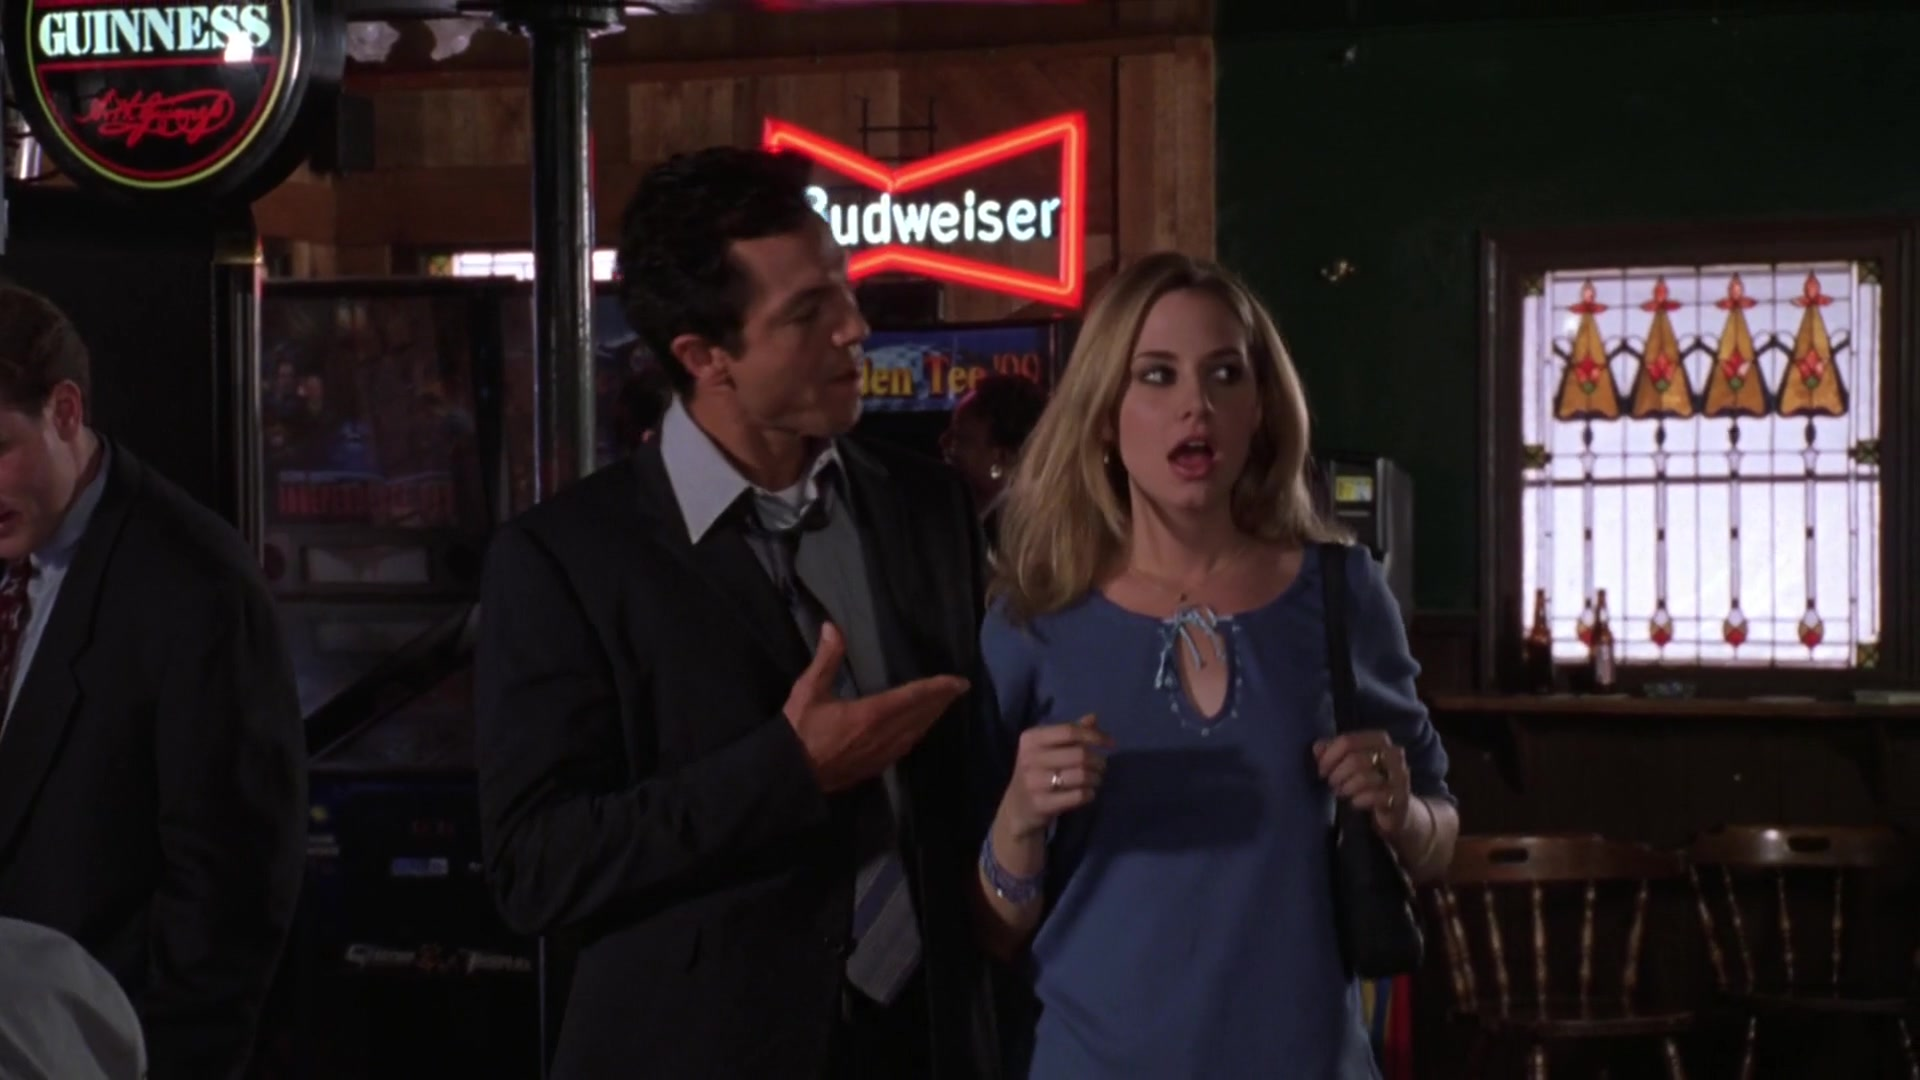 Guinness And Budweiser Beer Signs In Miss Congeniality 2000